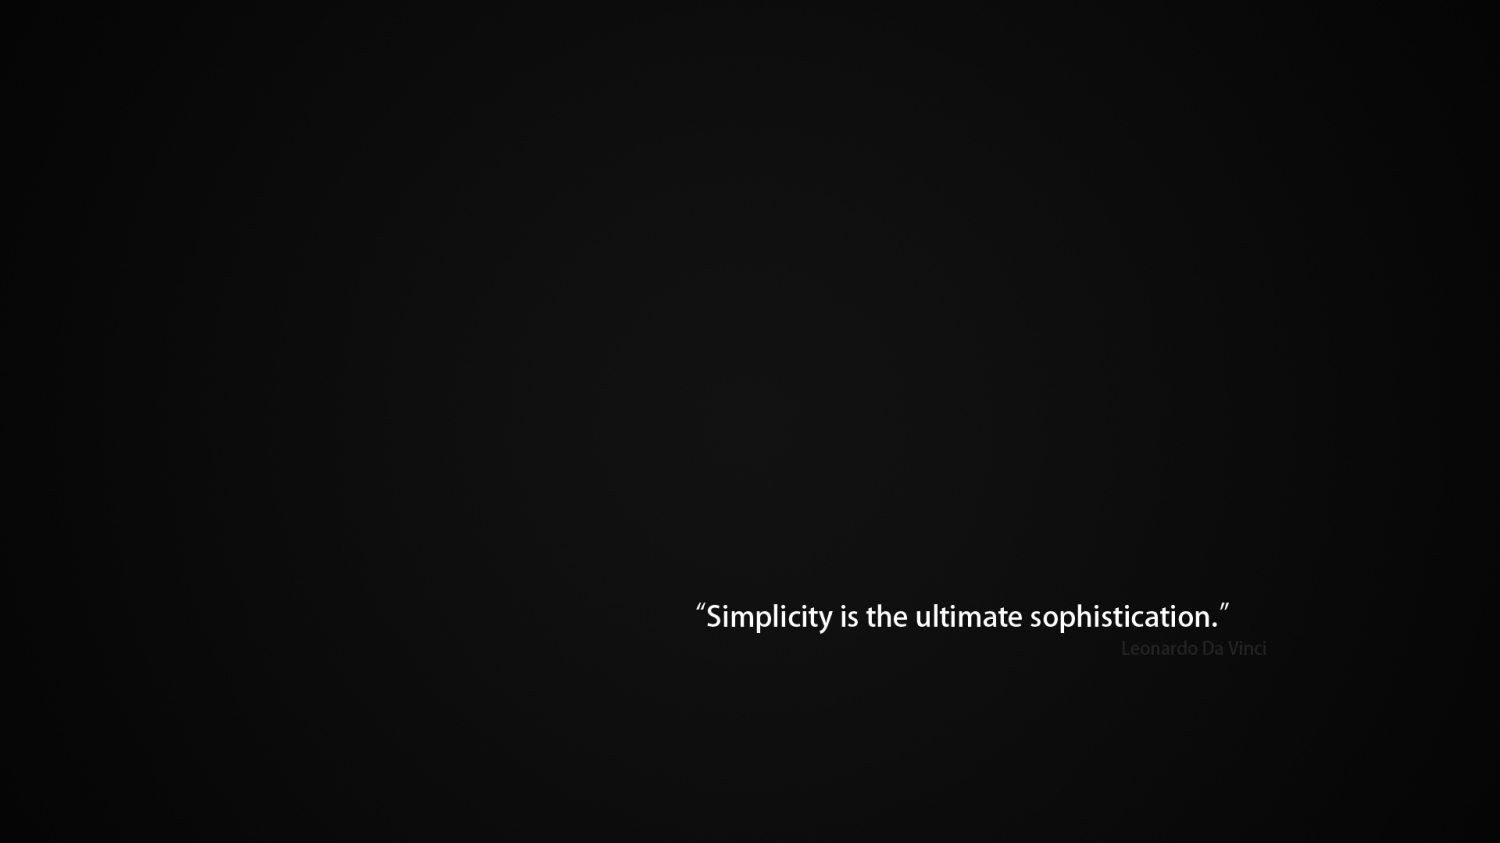 simplicity_is_the_ultimate_sophistication_by_icey_net-d4iw7vt